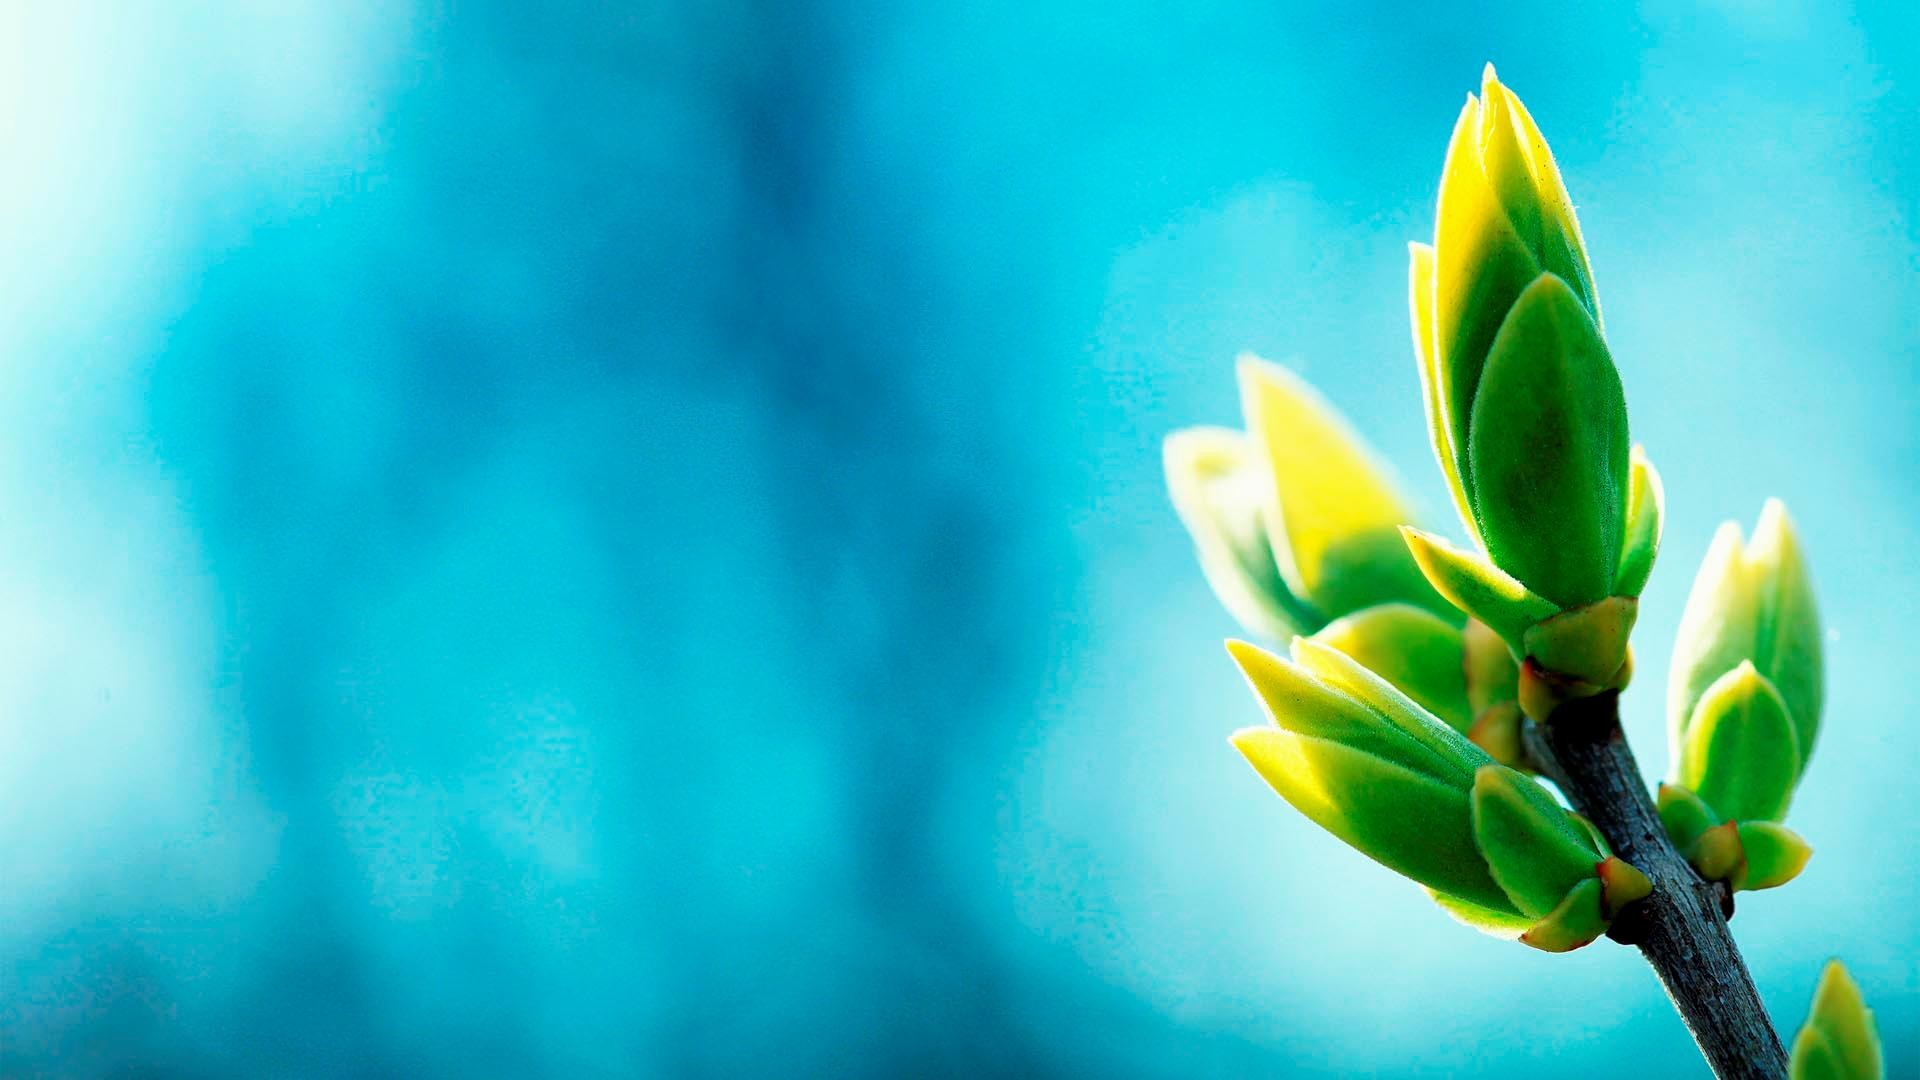 wallpaper.wiki-Blue-And-Green-Wallpaper-HD-PIC-